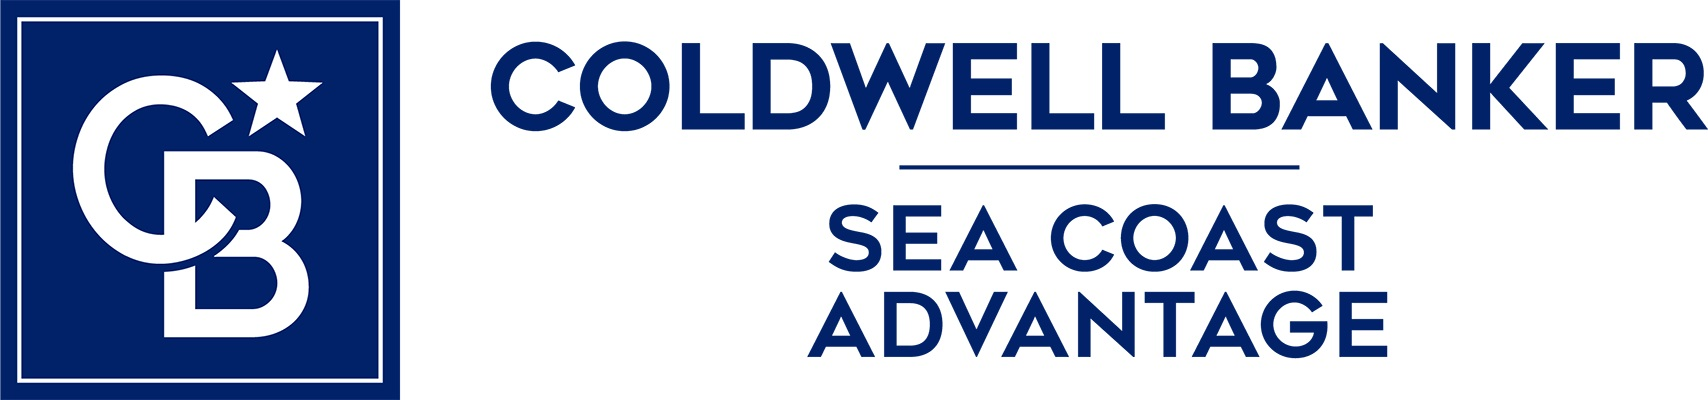 Madison Preble - Coldwell Banker Sea Coast Advantage Realty